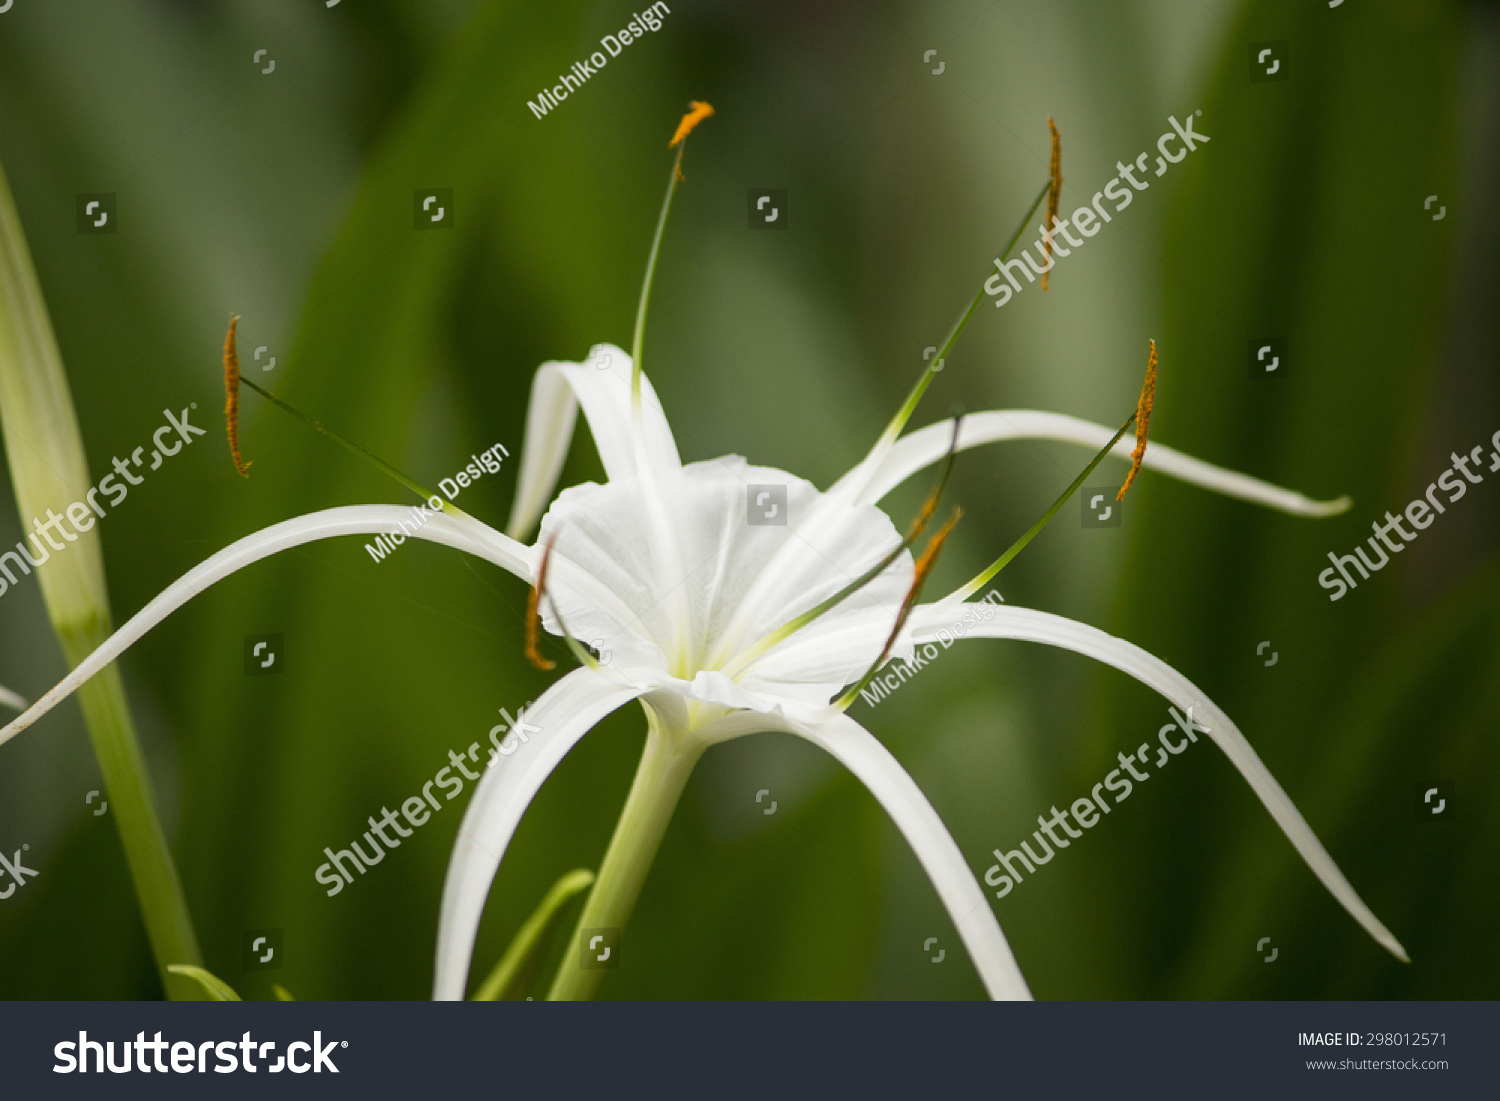 White lily like flower has long stock photo royalty free 298012571 white lily like flower has long skinny petals spider lily izmirmasajfo Image collections